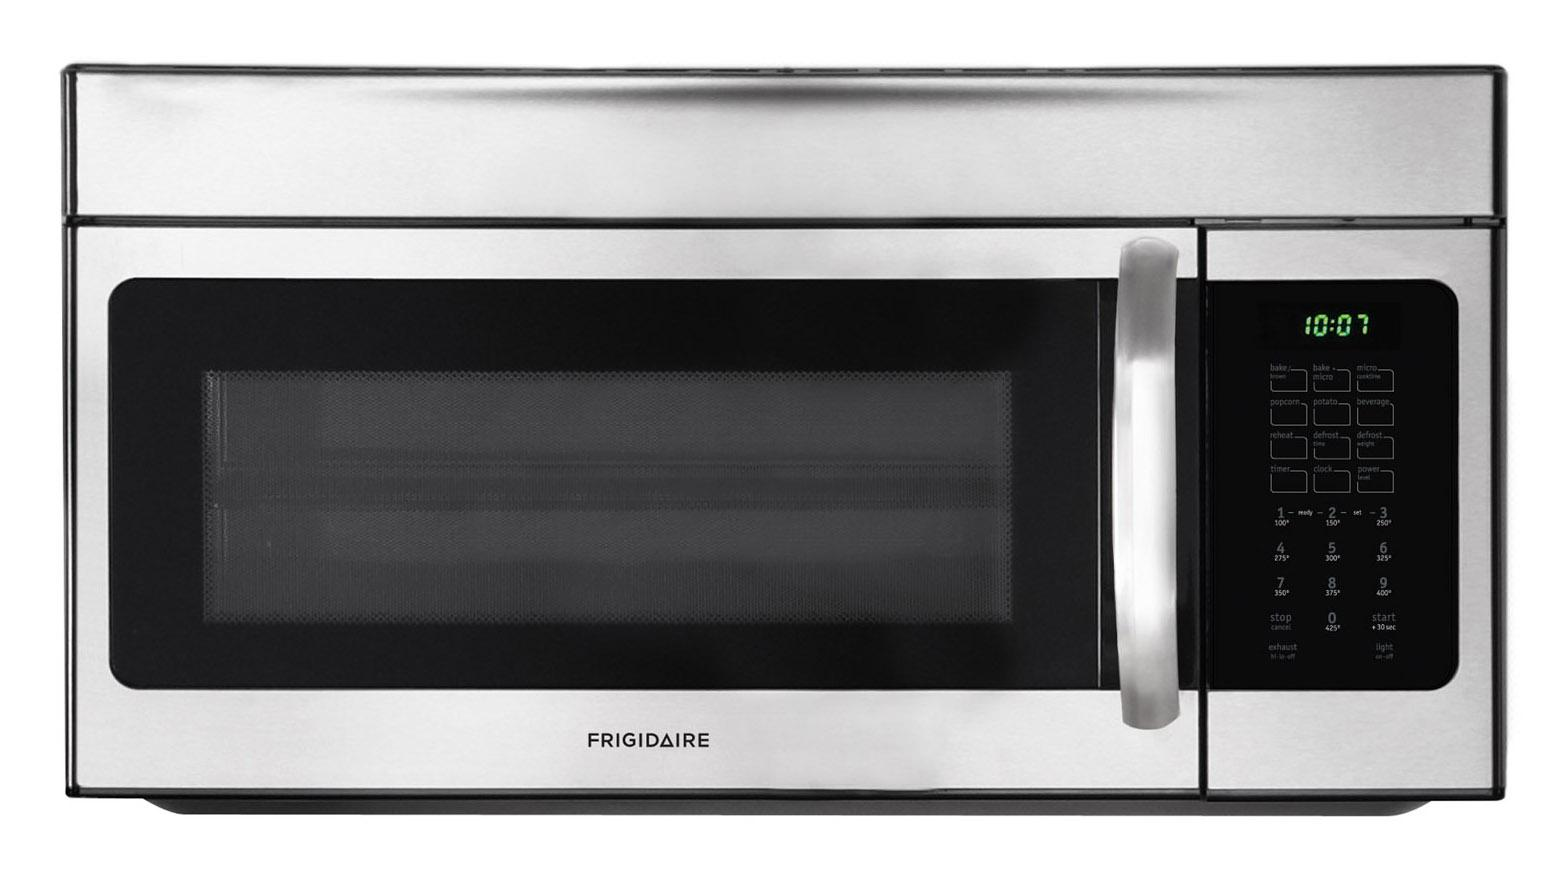 Frigidaire Microwaves 1.5 Cu. Ft. Over-The-Range Microwave - Item Number: FFMV154CLS